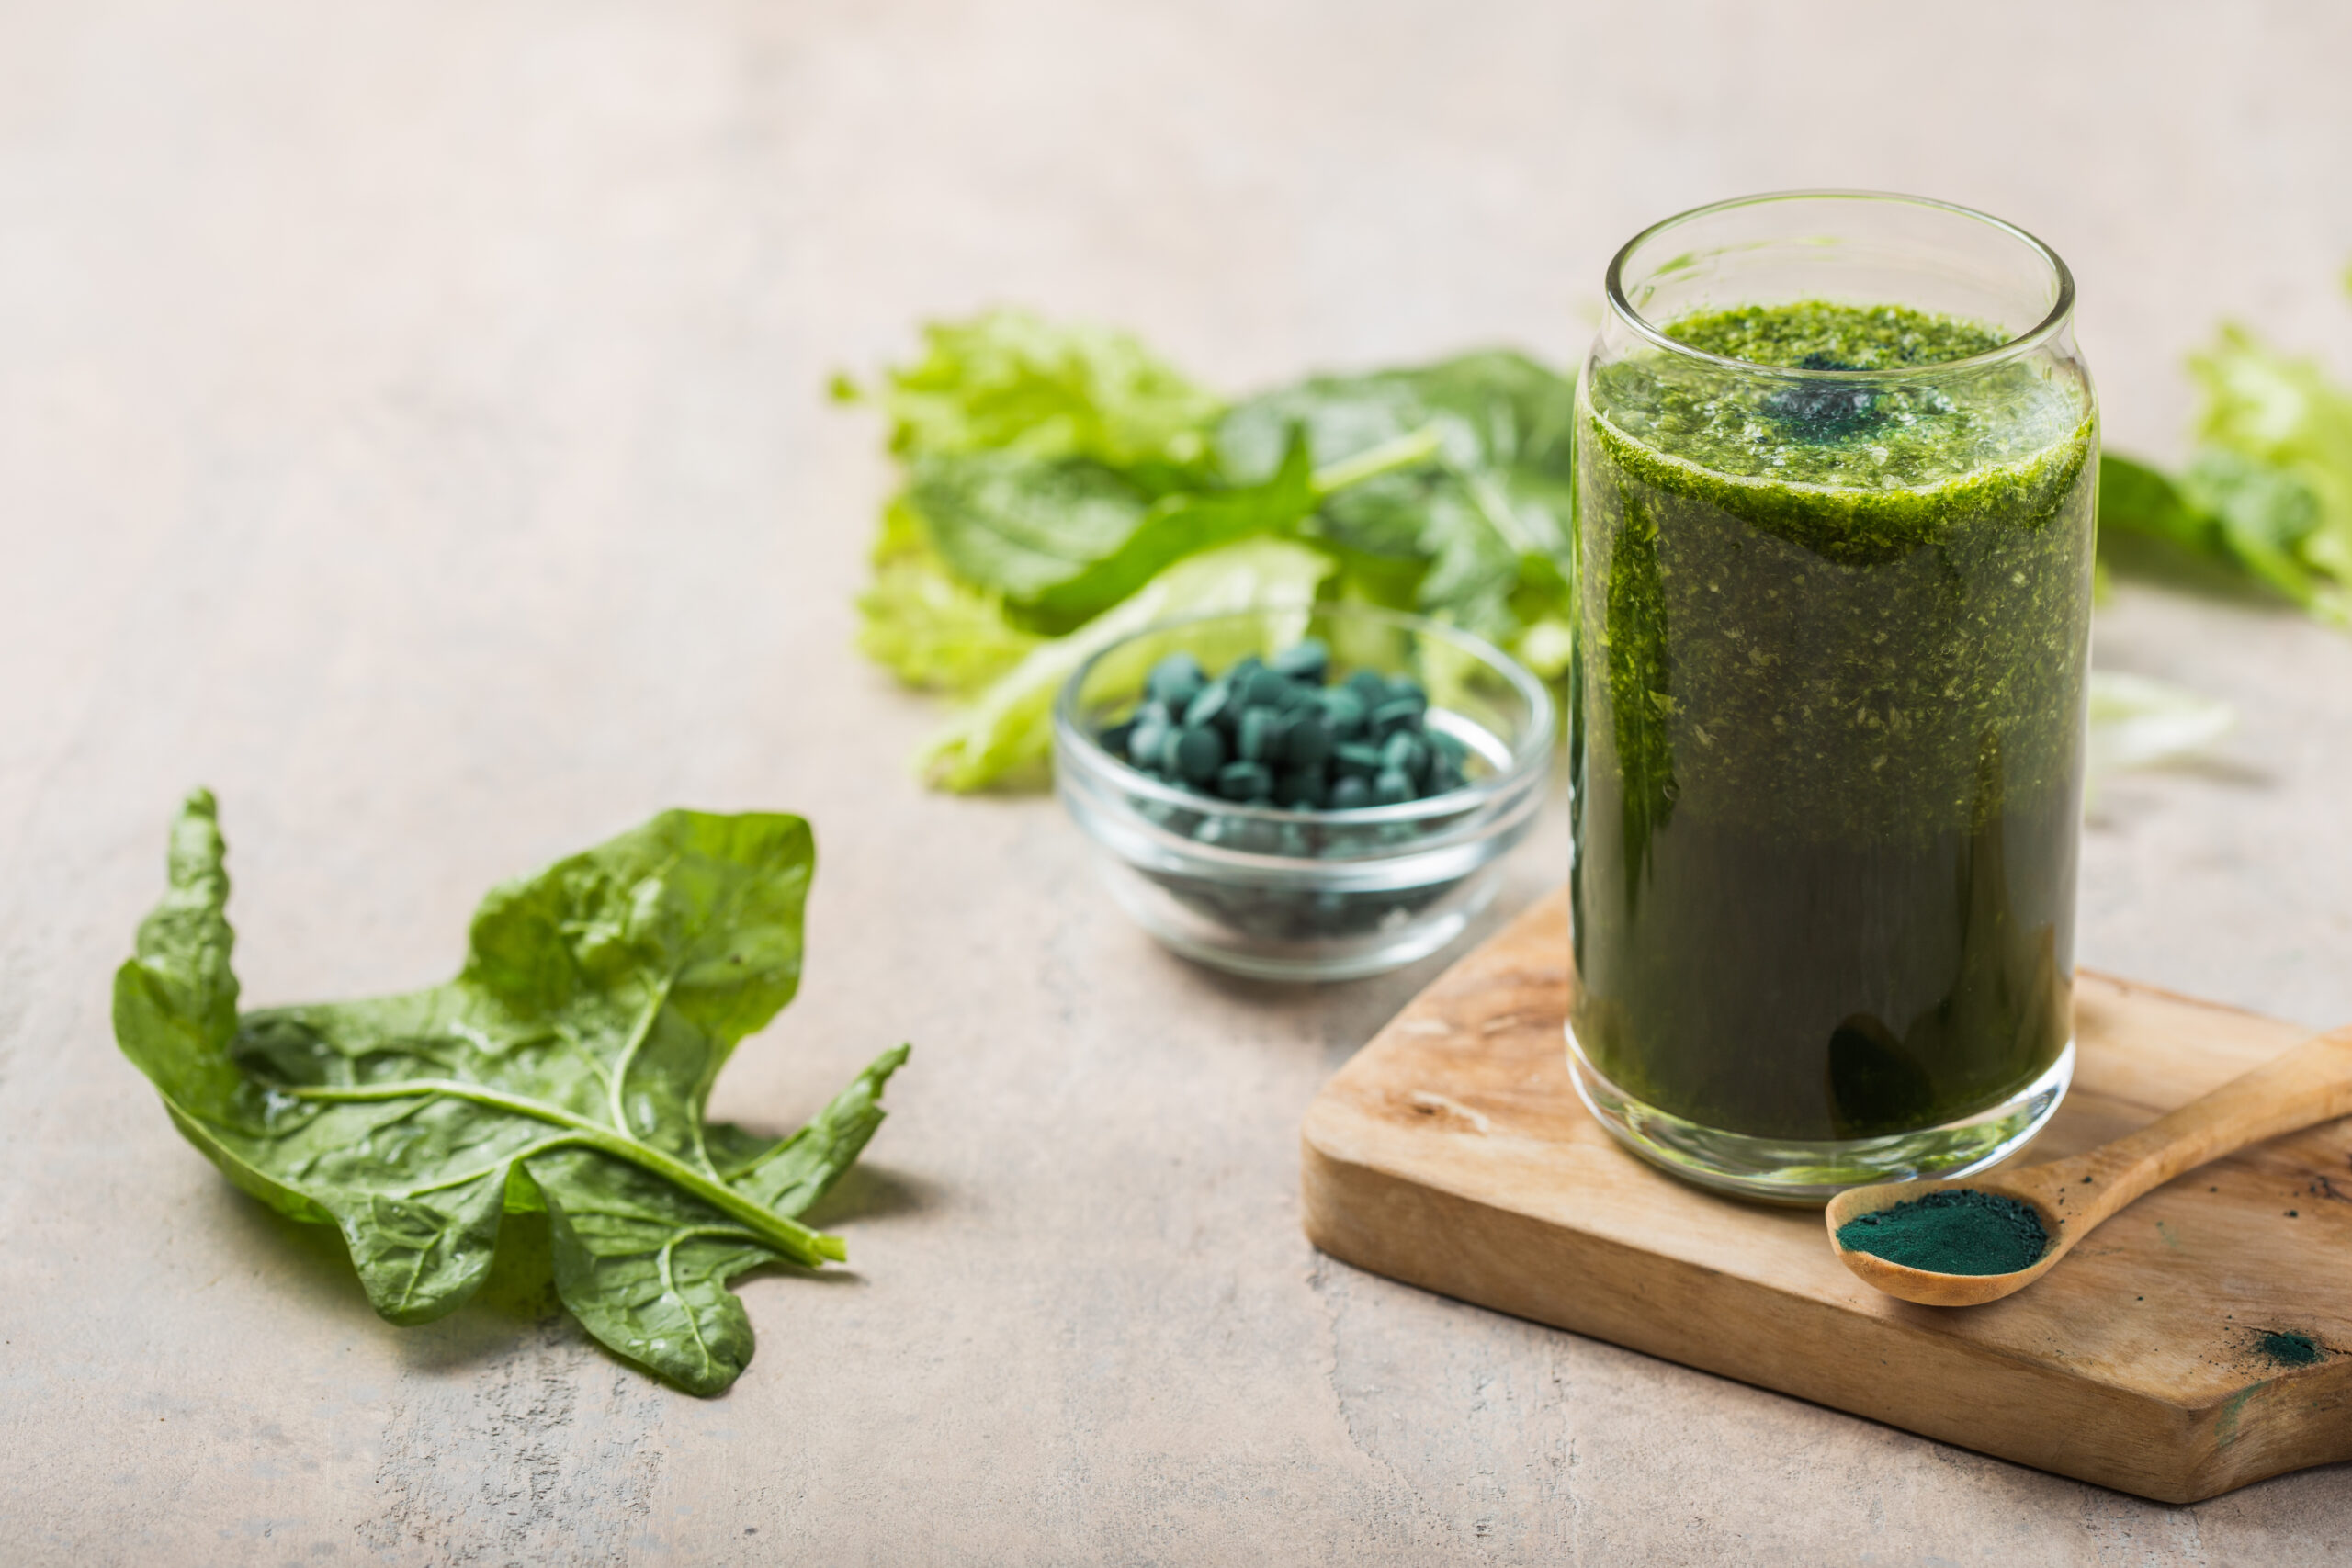 Green smoothie with spirulina. Young barley and chlorella spirulina. Detox superfood.Fresh green smoothie in a blender. Top view. Freshly prepared vegetarian smoothies